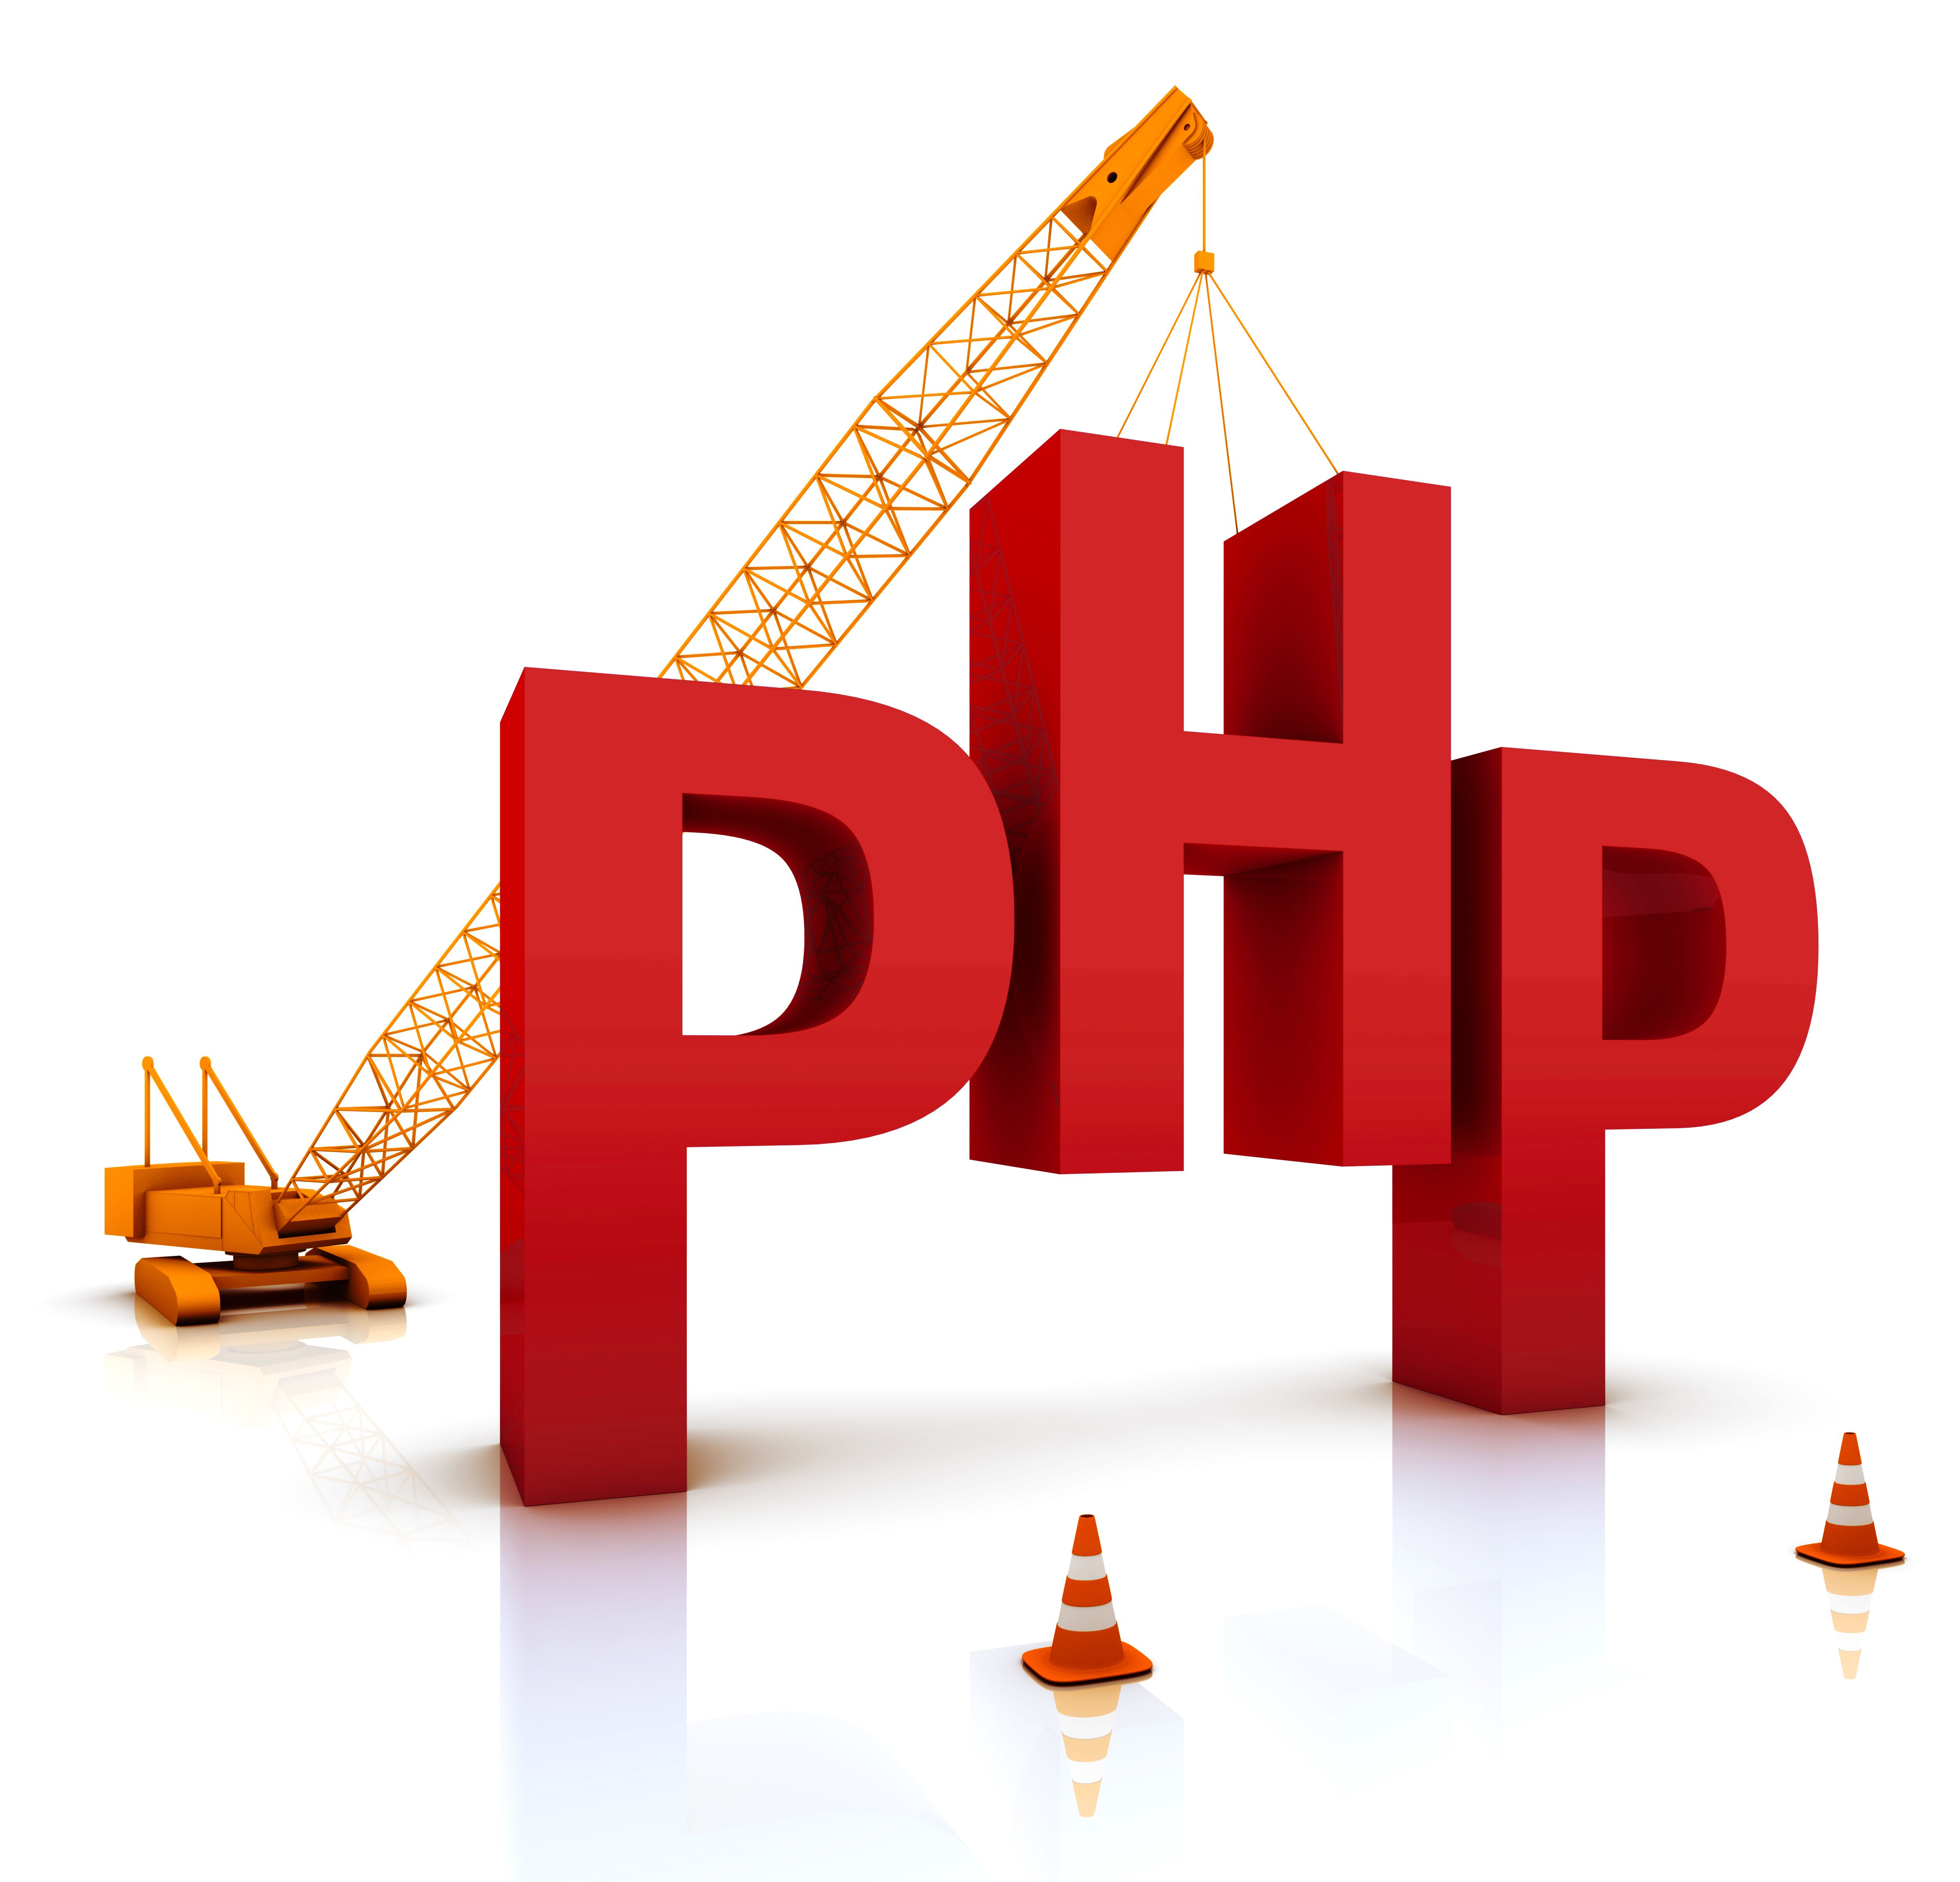 Looking For An Experienced Php Web Developer To Implement Your Web Avenue With Ease Ope Web Development Design Web Development Projects Web Development Tools